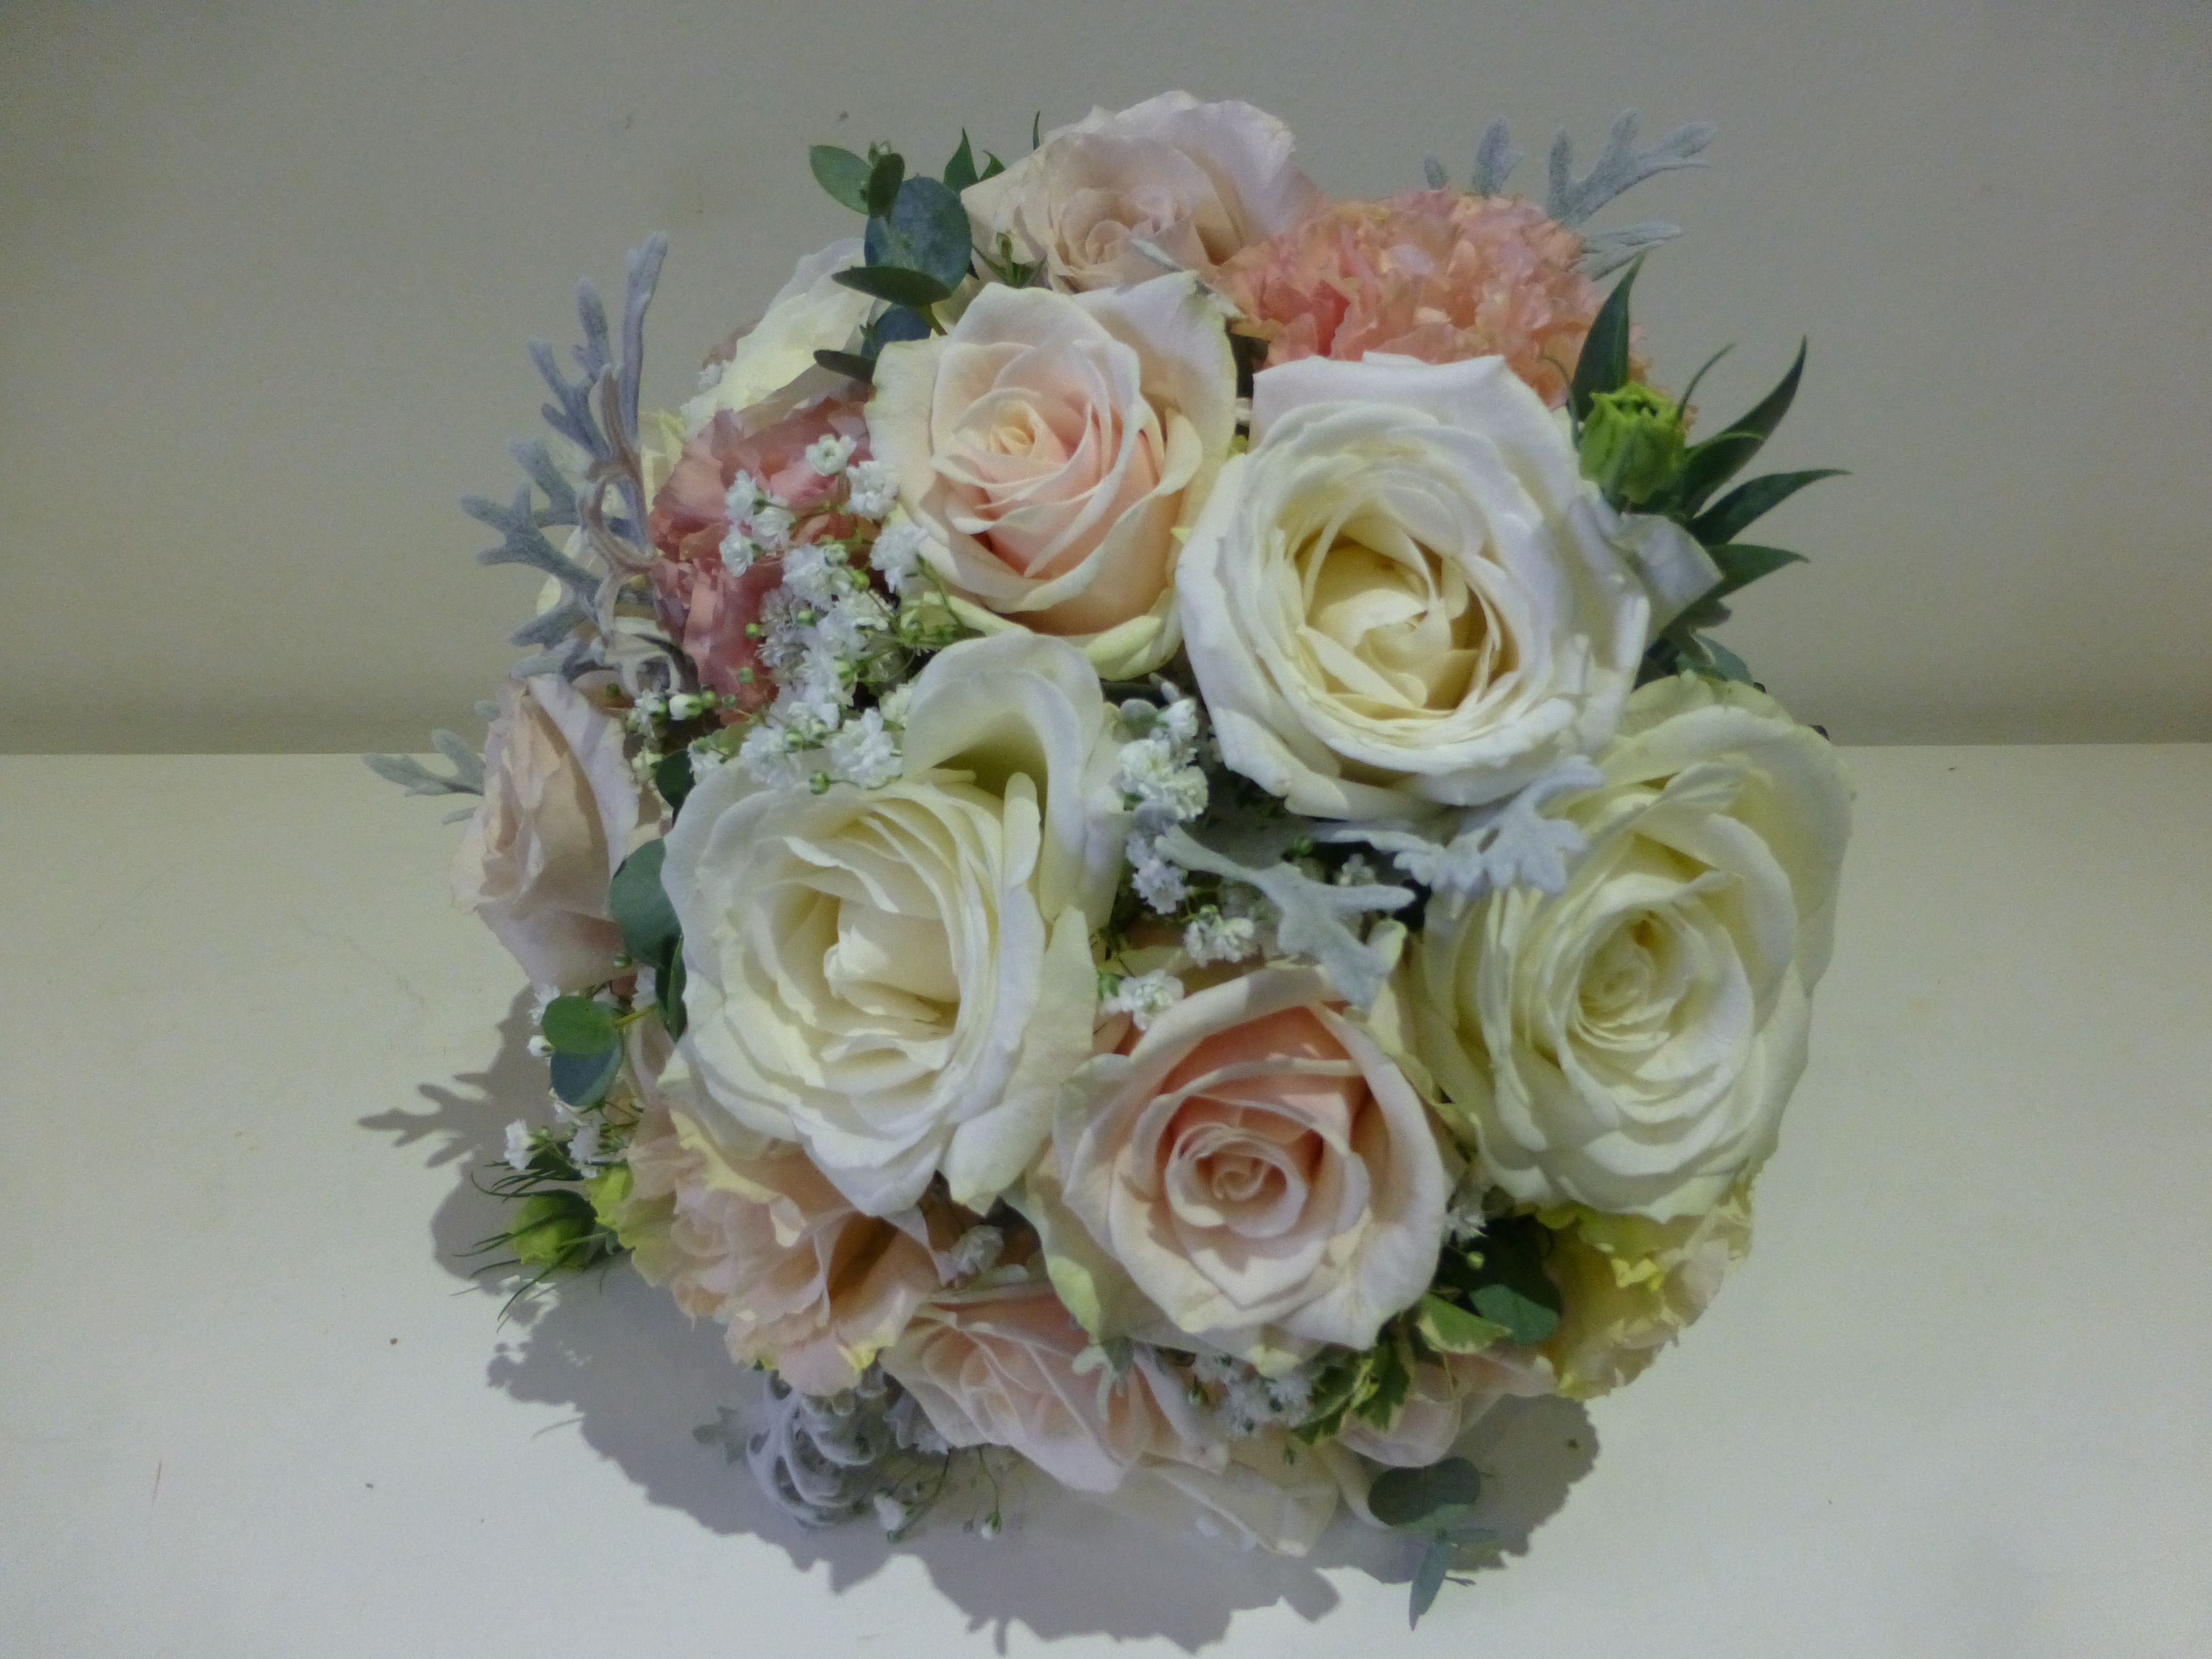 Flowers by shirley garden rose bouquets - Bridal Bouquet Avalanche Roses Peach And Ivory Lisianthus Eucalyptus And Senecio